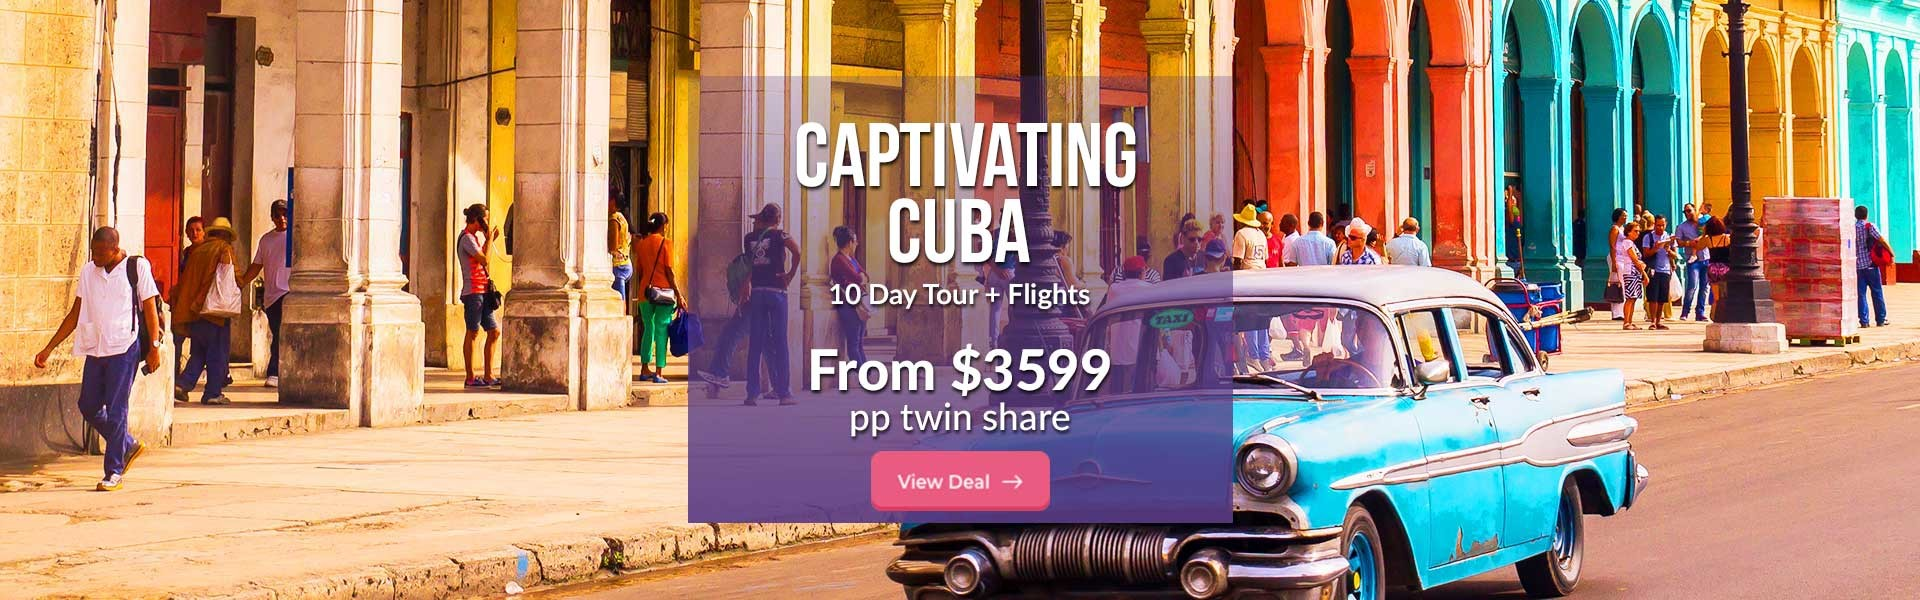 10 Day Captivating Cuba Tour with Flights